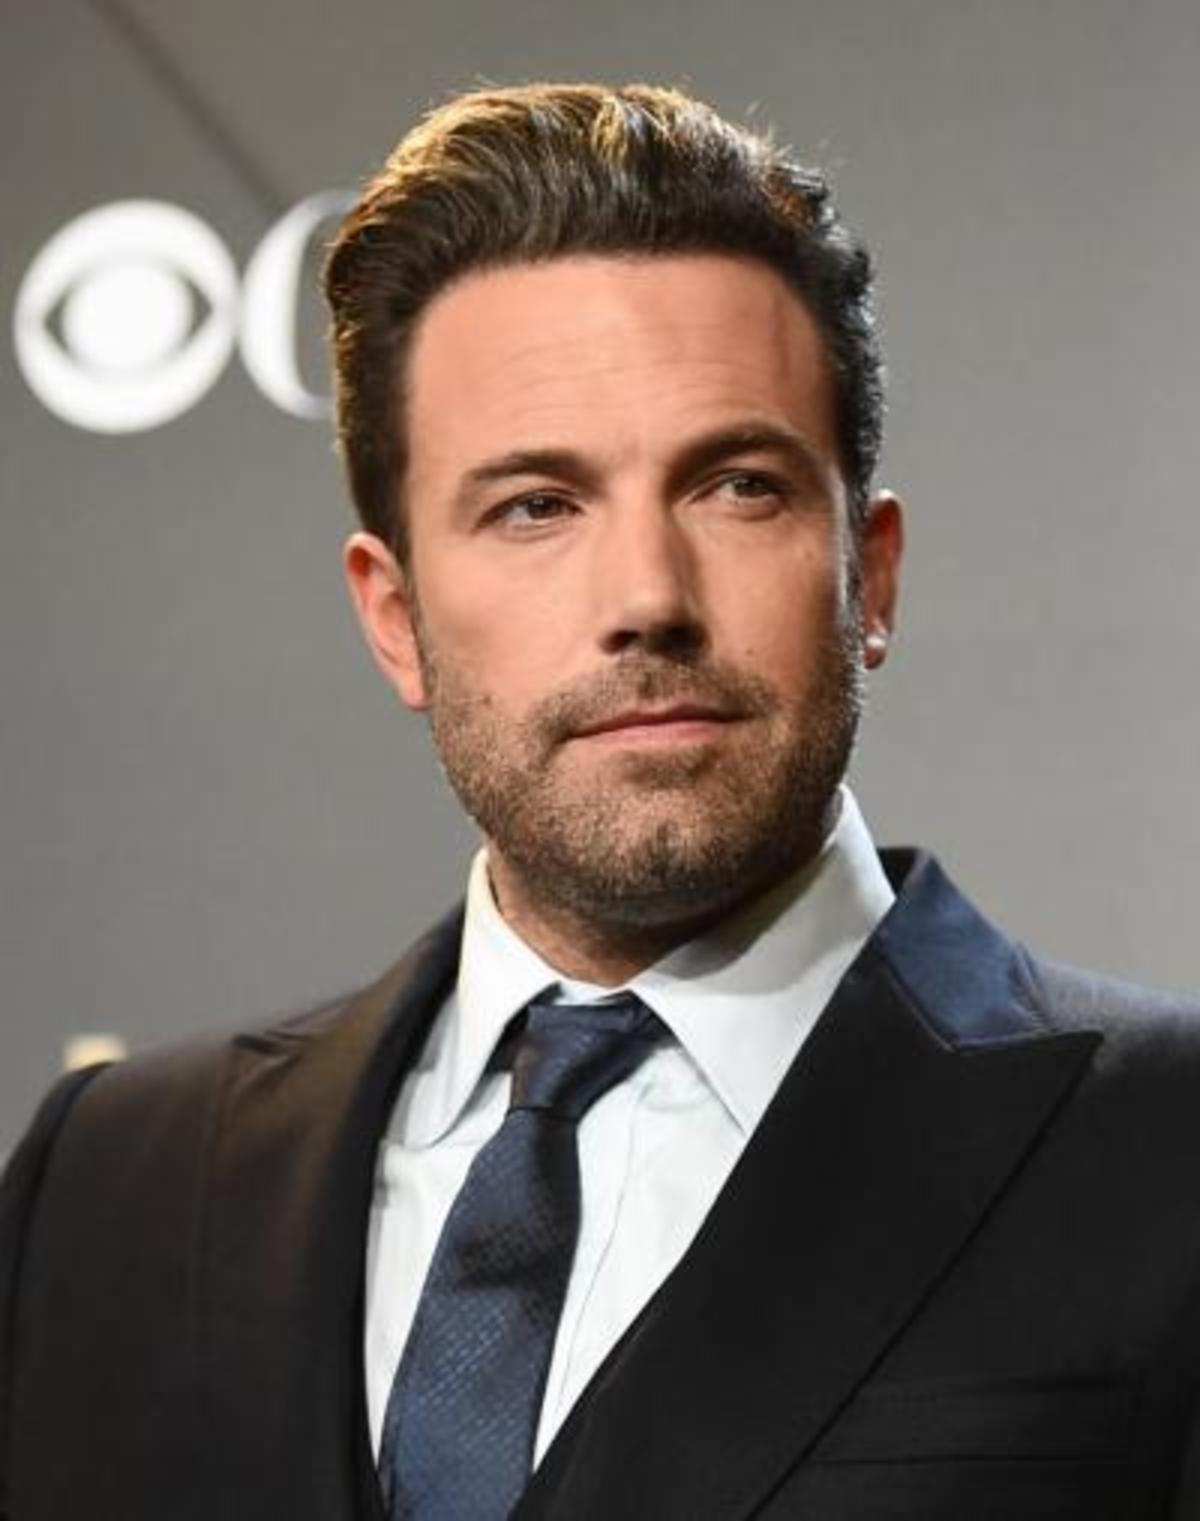 Ben-Affleck-Looking-Hot-in-Black-Suit